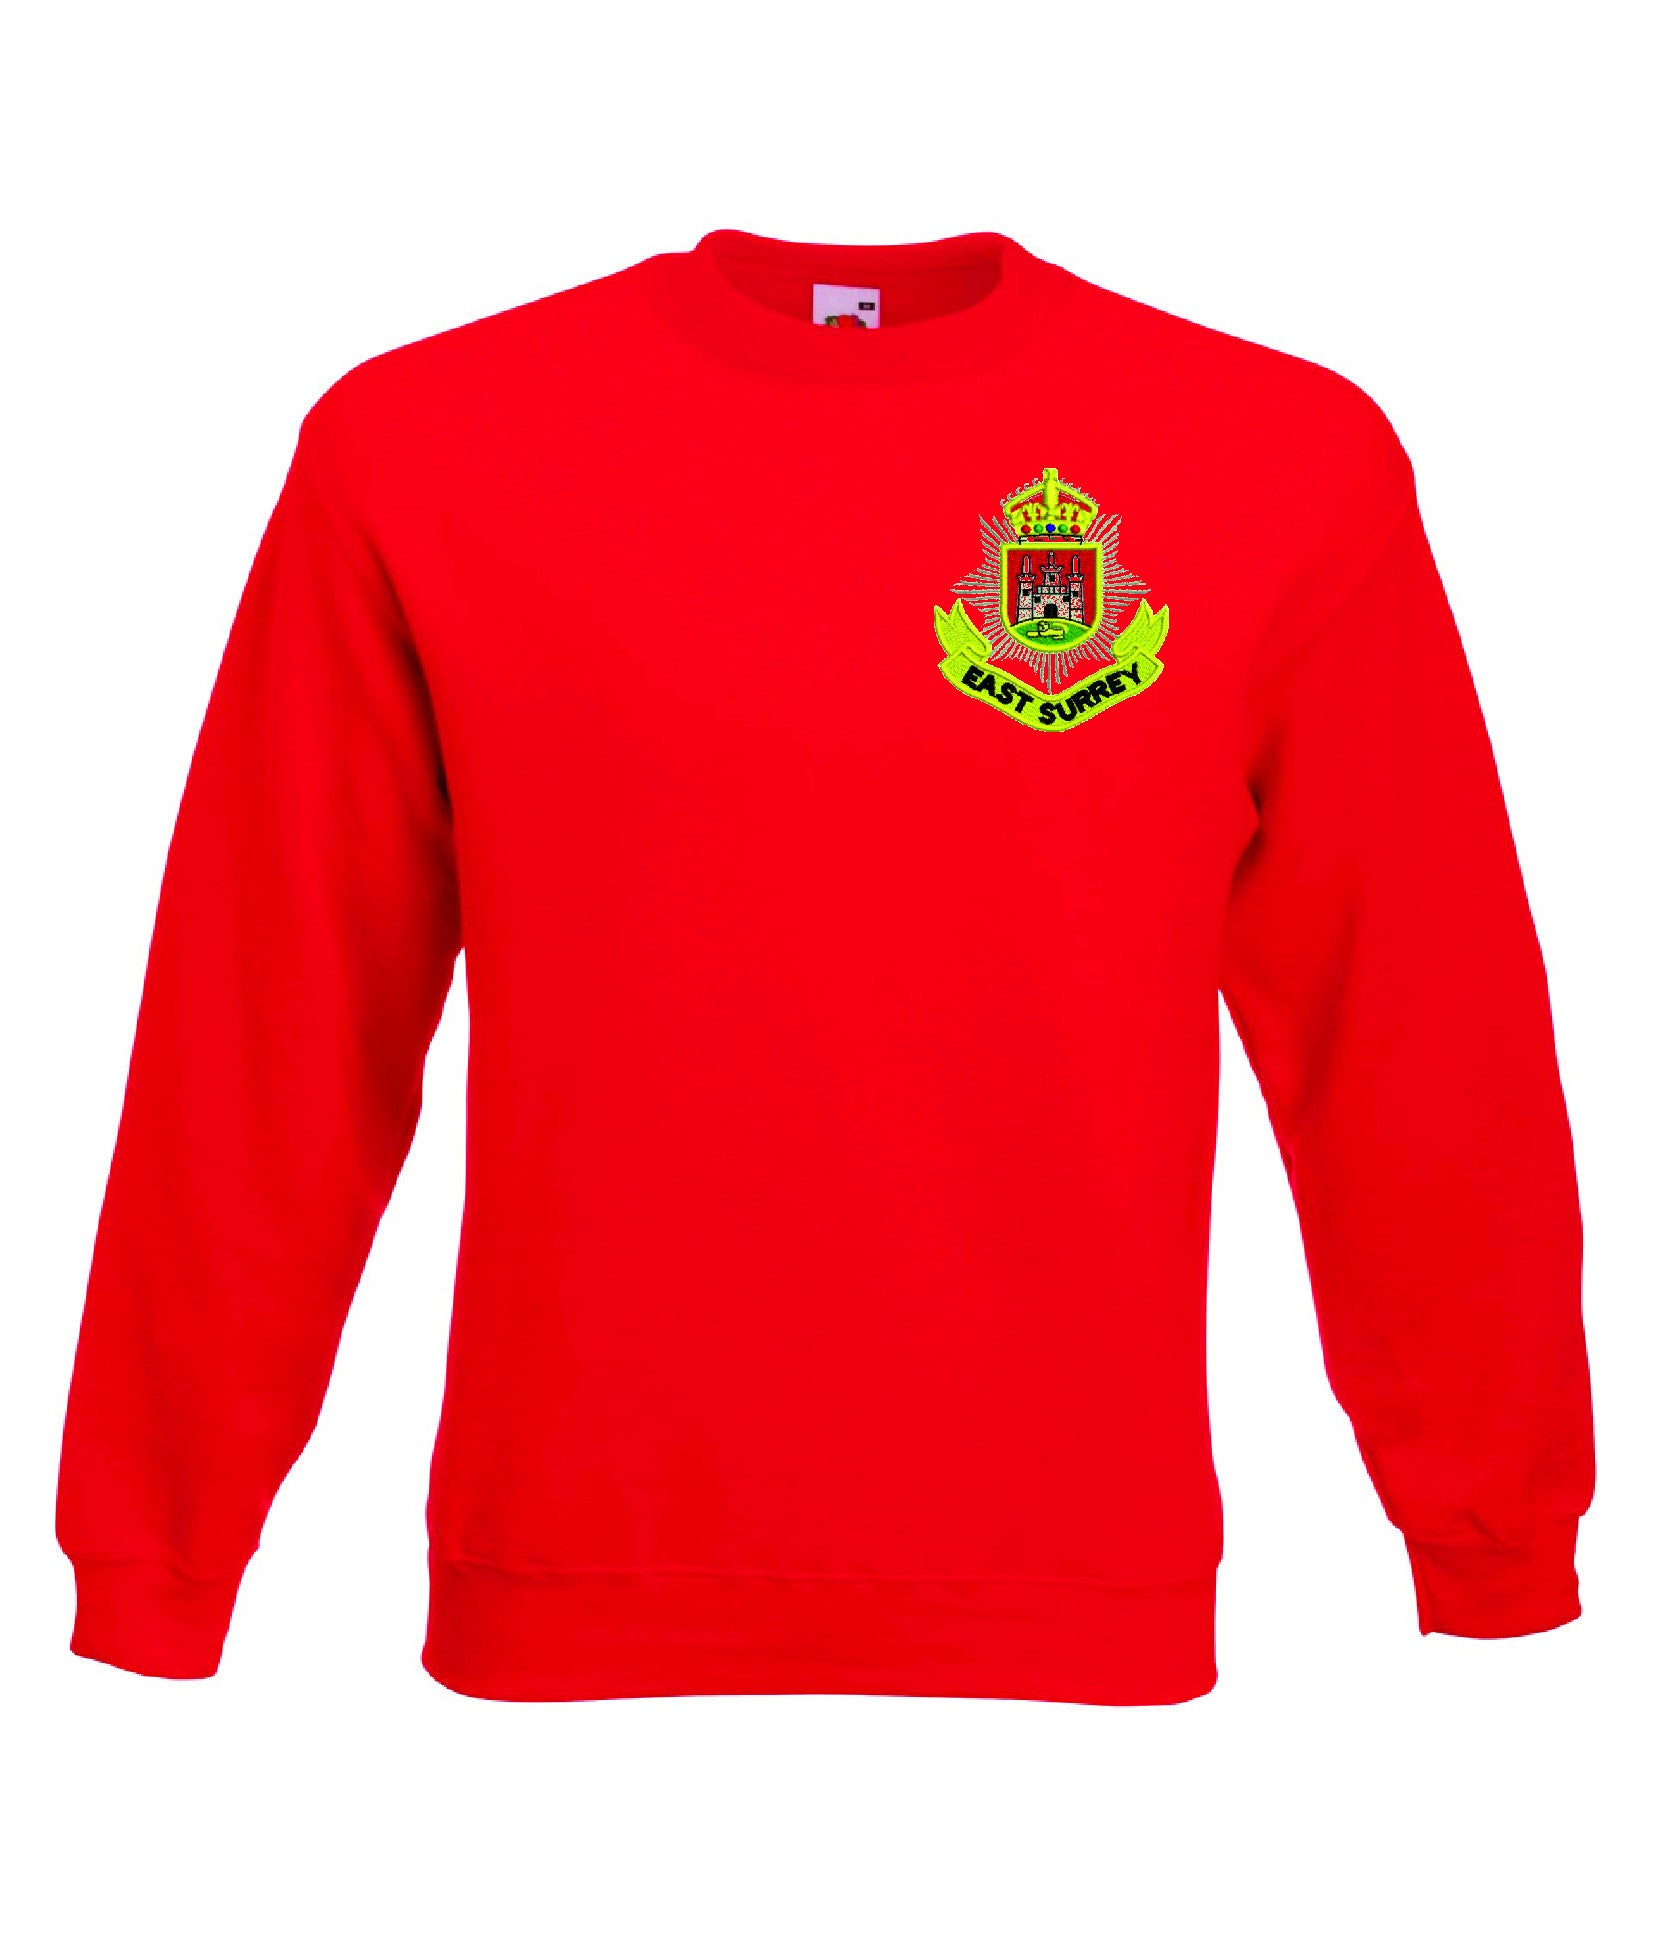 East Surrey Regiment Sweatshirt